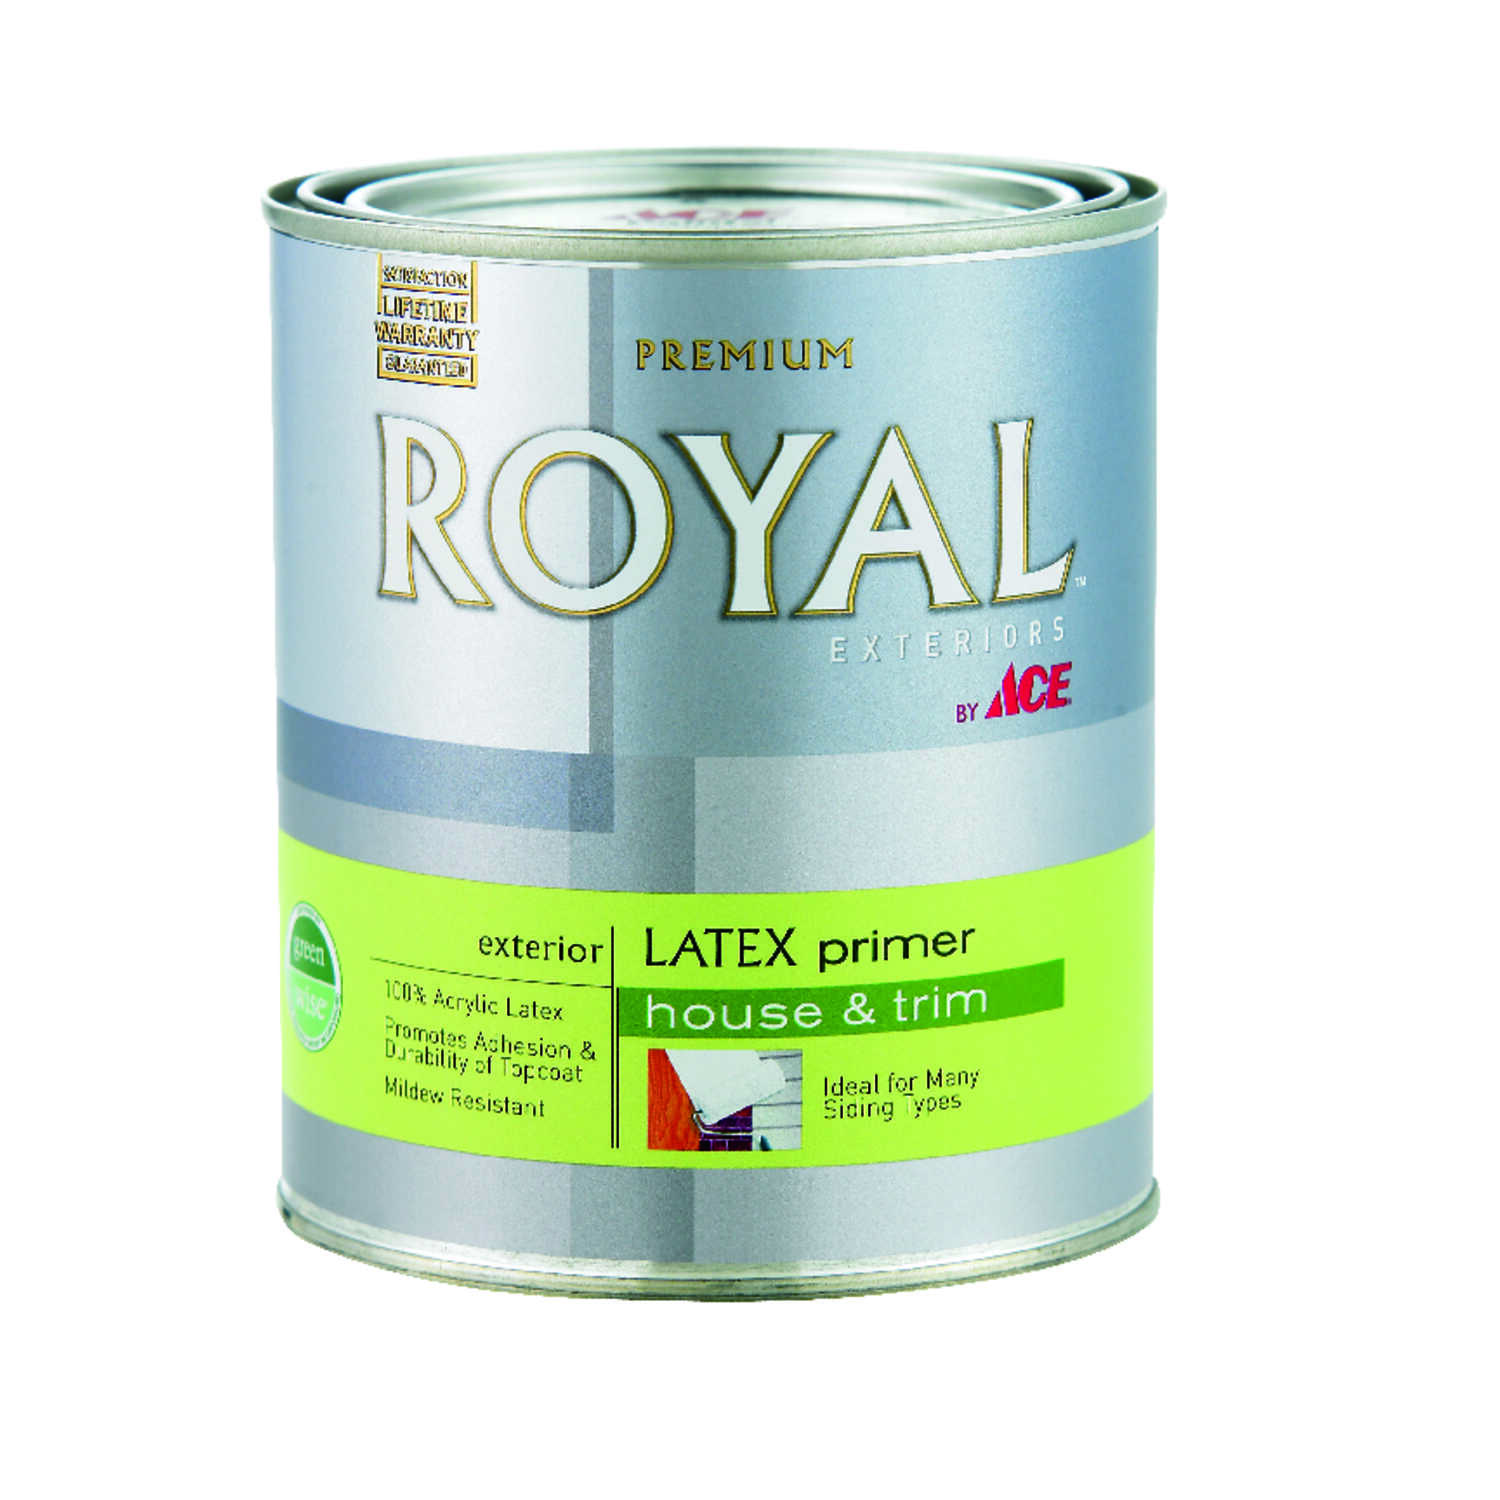 Ace  Royal Exteriors  Flat  White  Acrylic Latex  Latex Primer  For Multiple Surfaces 1 qt.